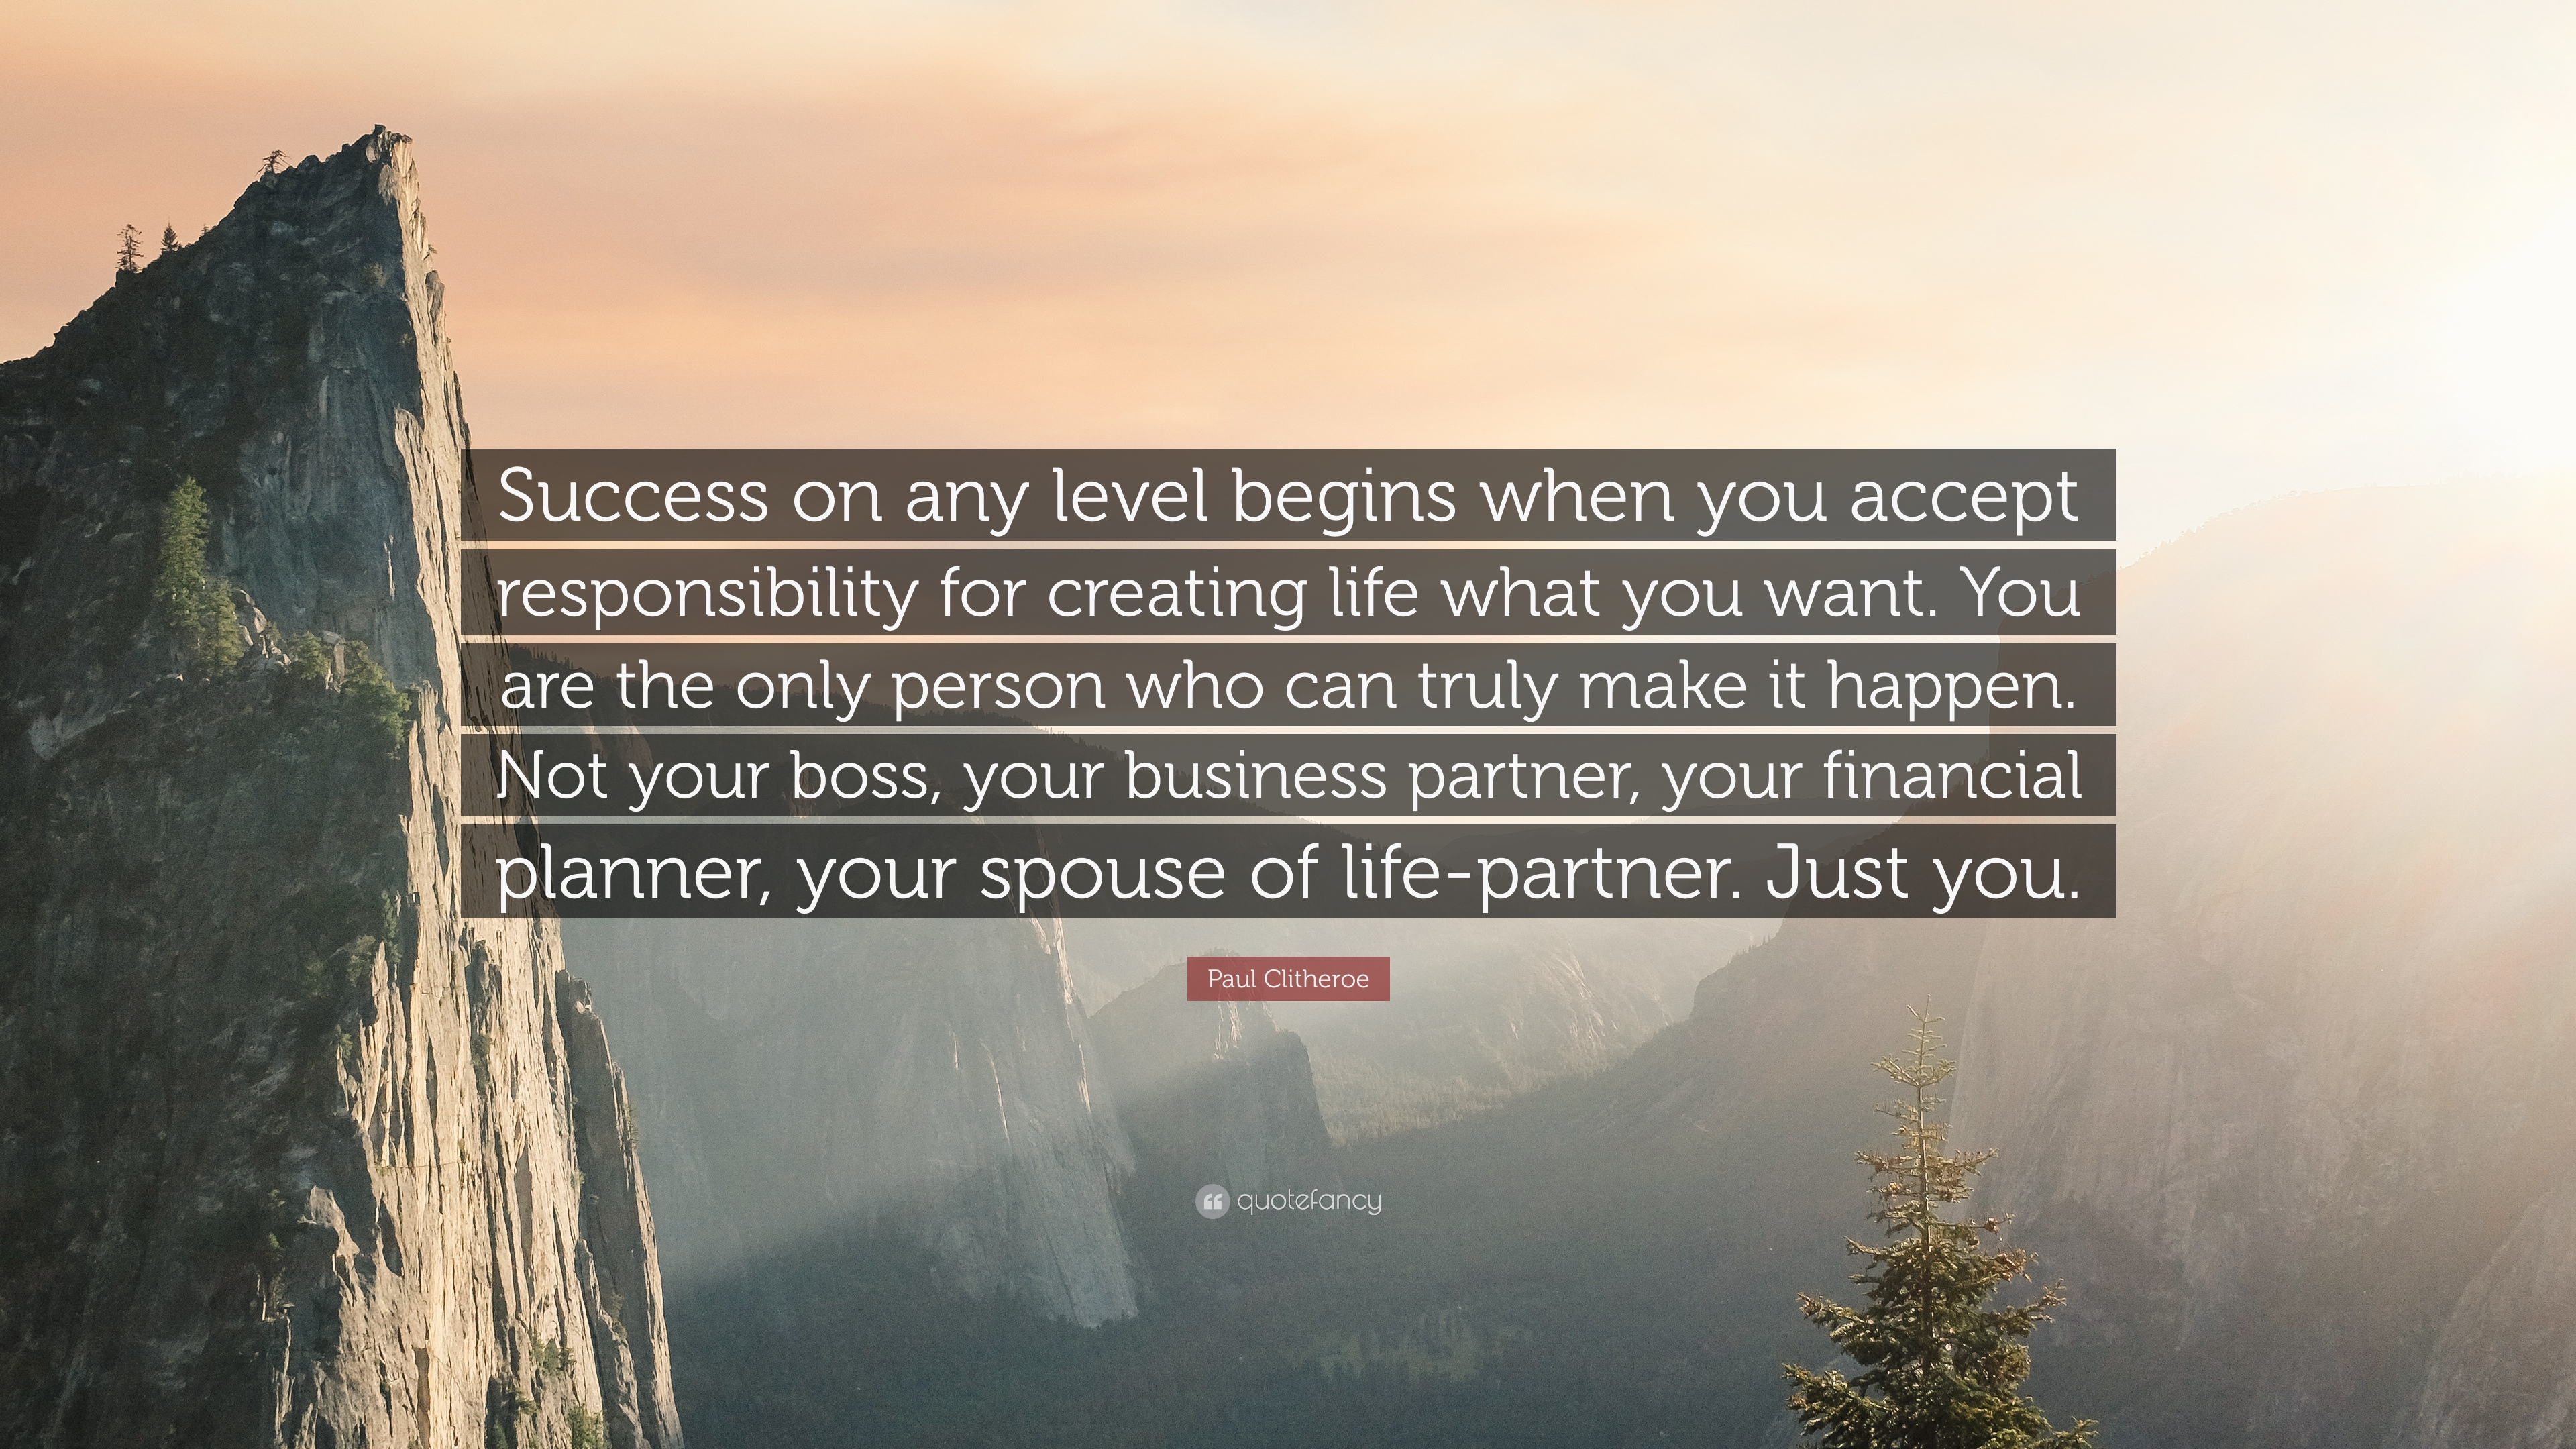 Life partner want quotes a in i 125 Inspiring